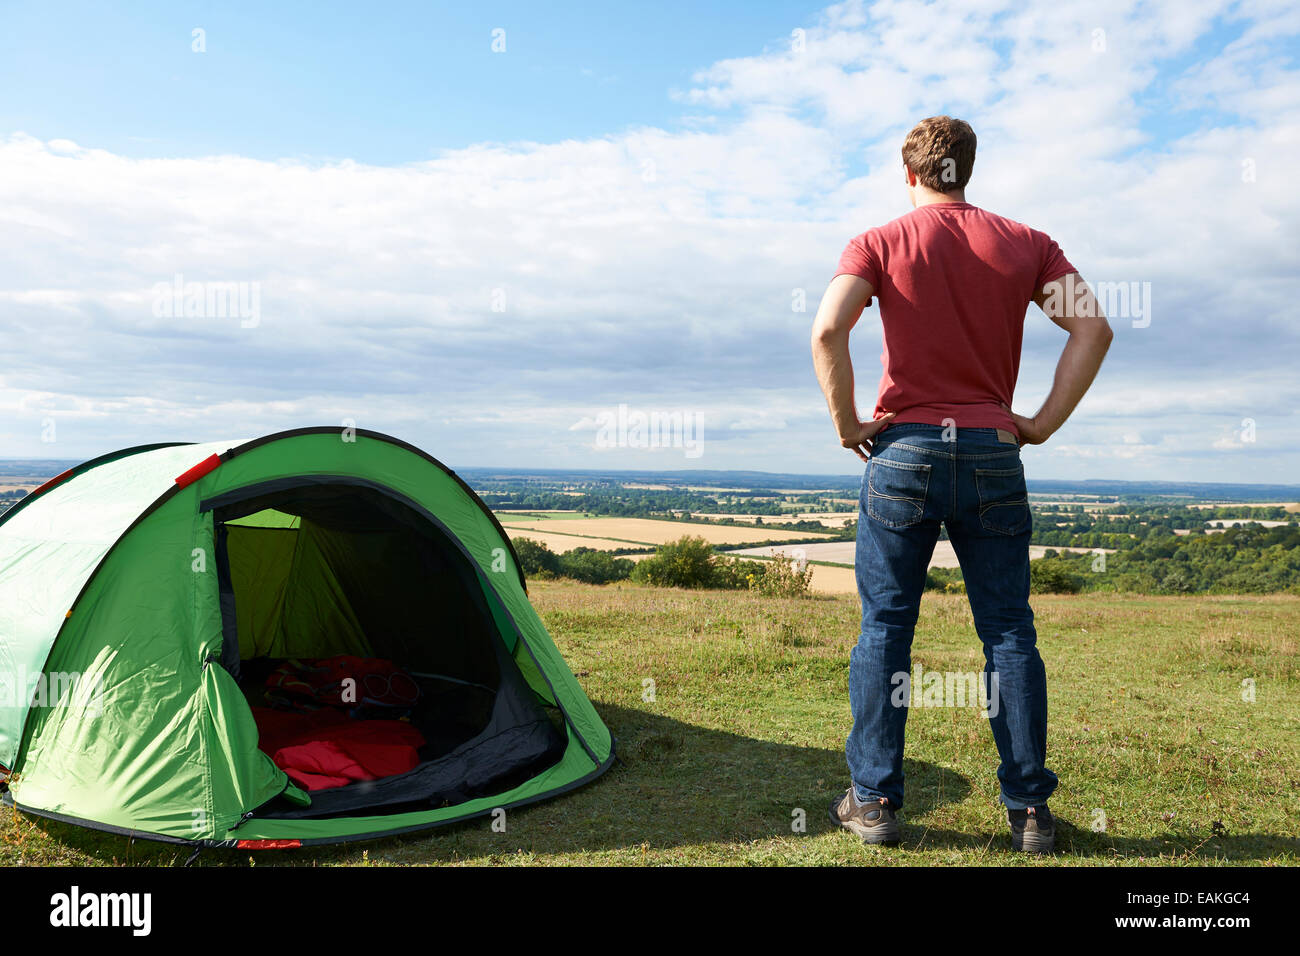 Rear View Of Man Camping And Admiring View - Stock Image